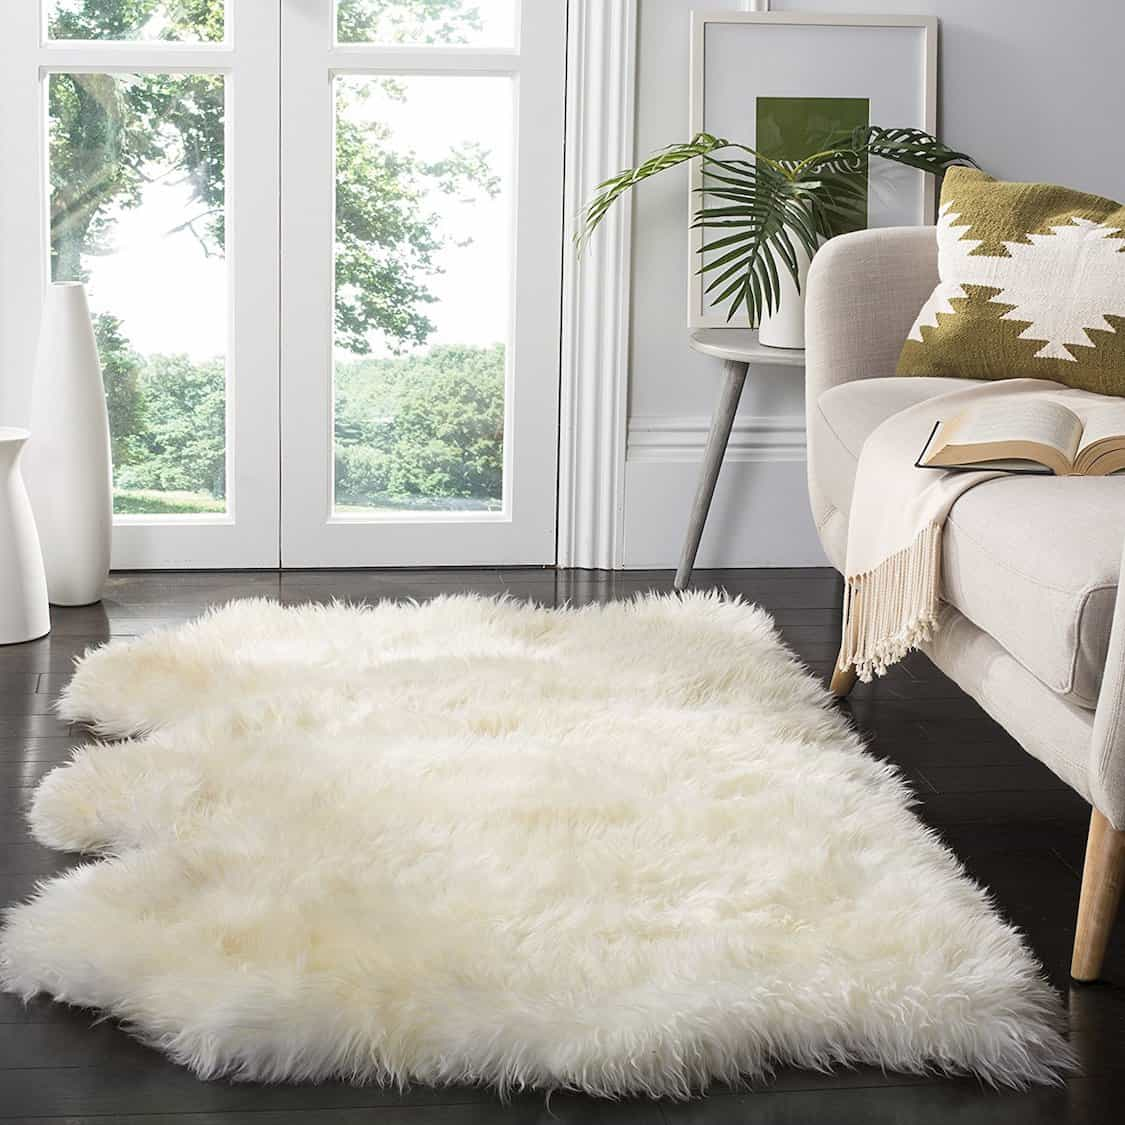 large ivory white sheepskin rug image 12 of 15